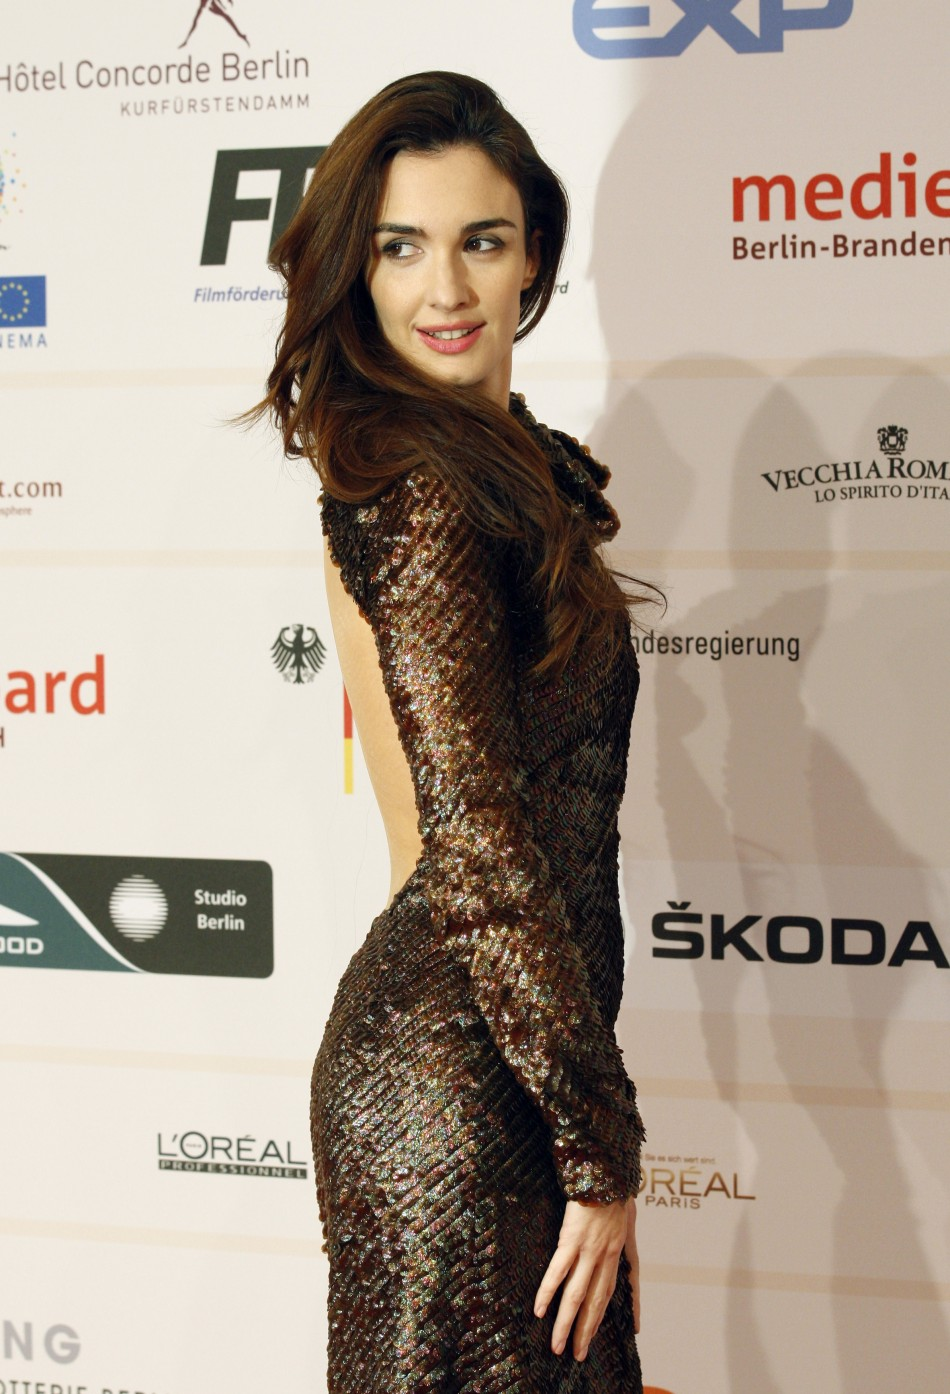 European Film Awards 2011: Winners, Celebrities and Red Carpet Arrivals